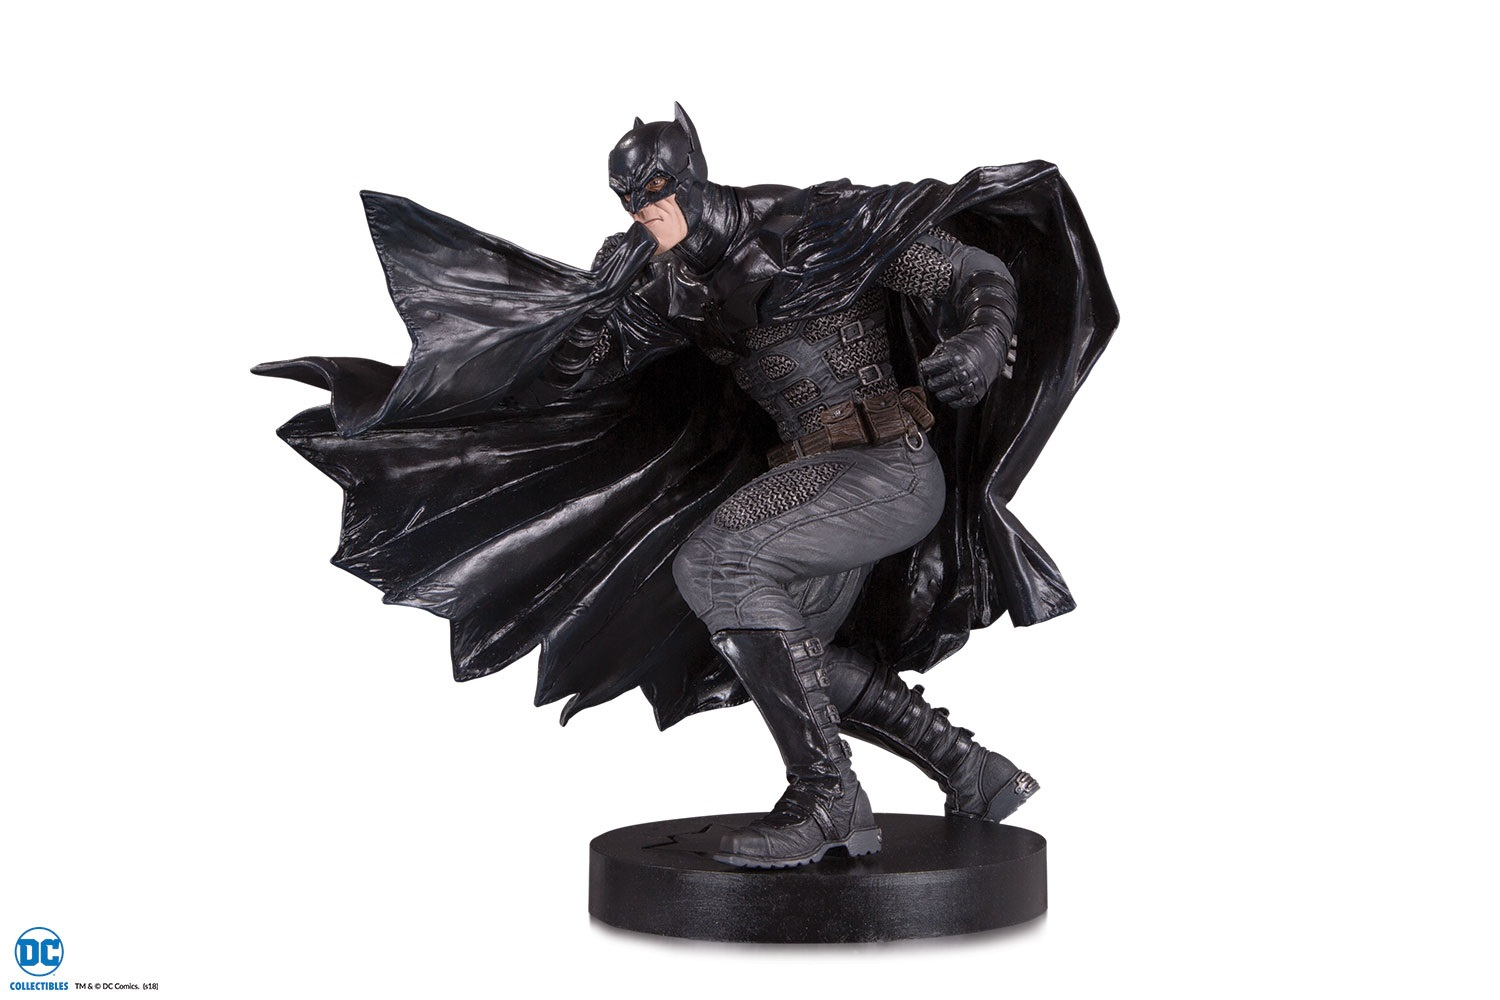 DC Comics Designer Series Batman Black Label Bermejo Statue